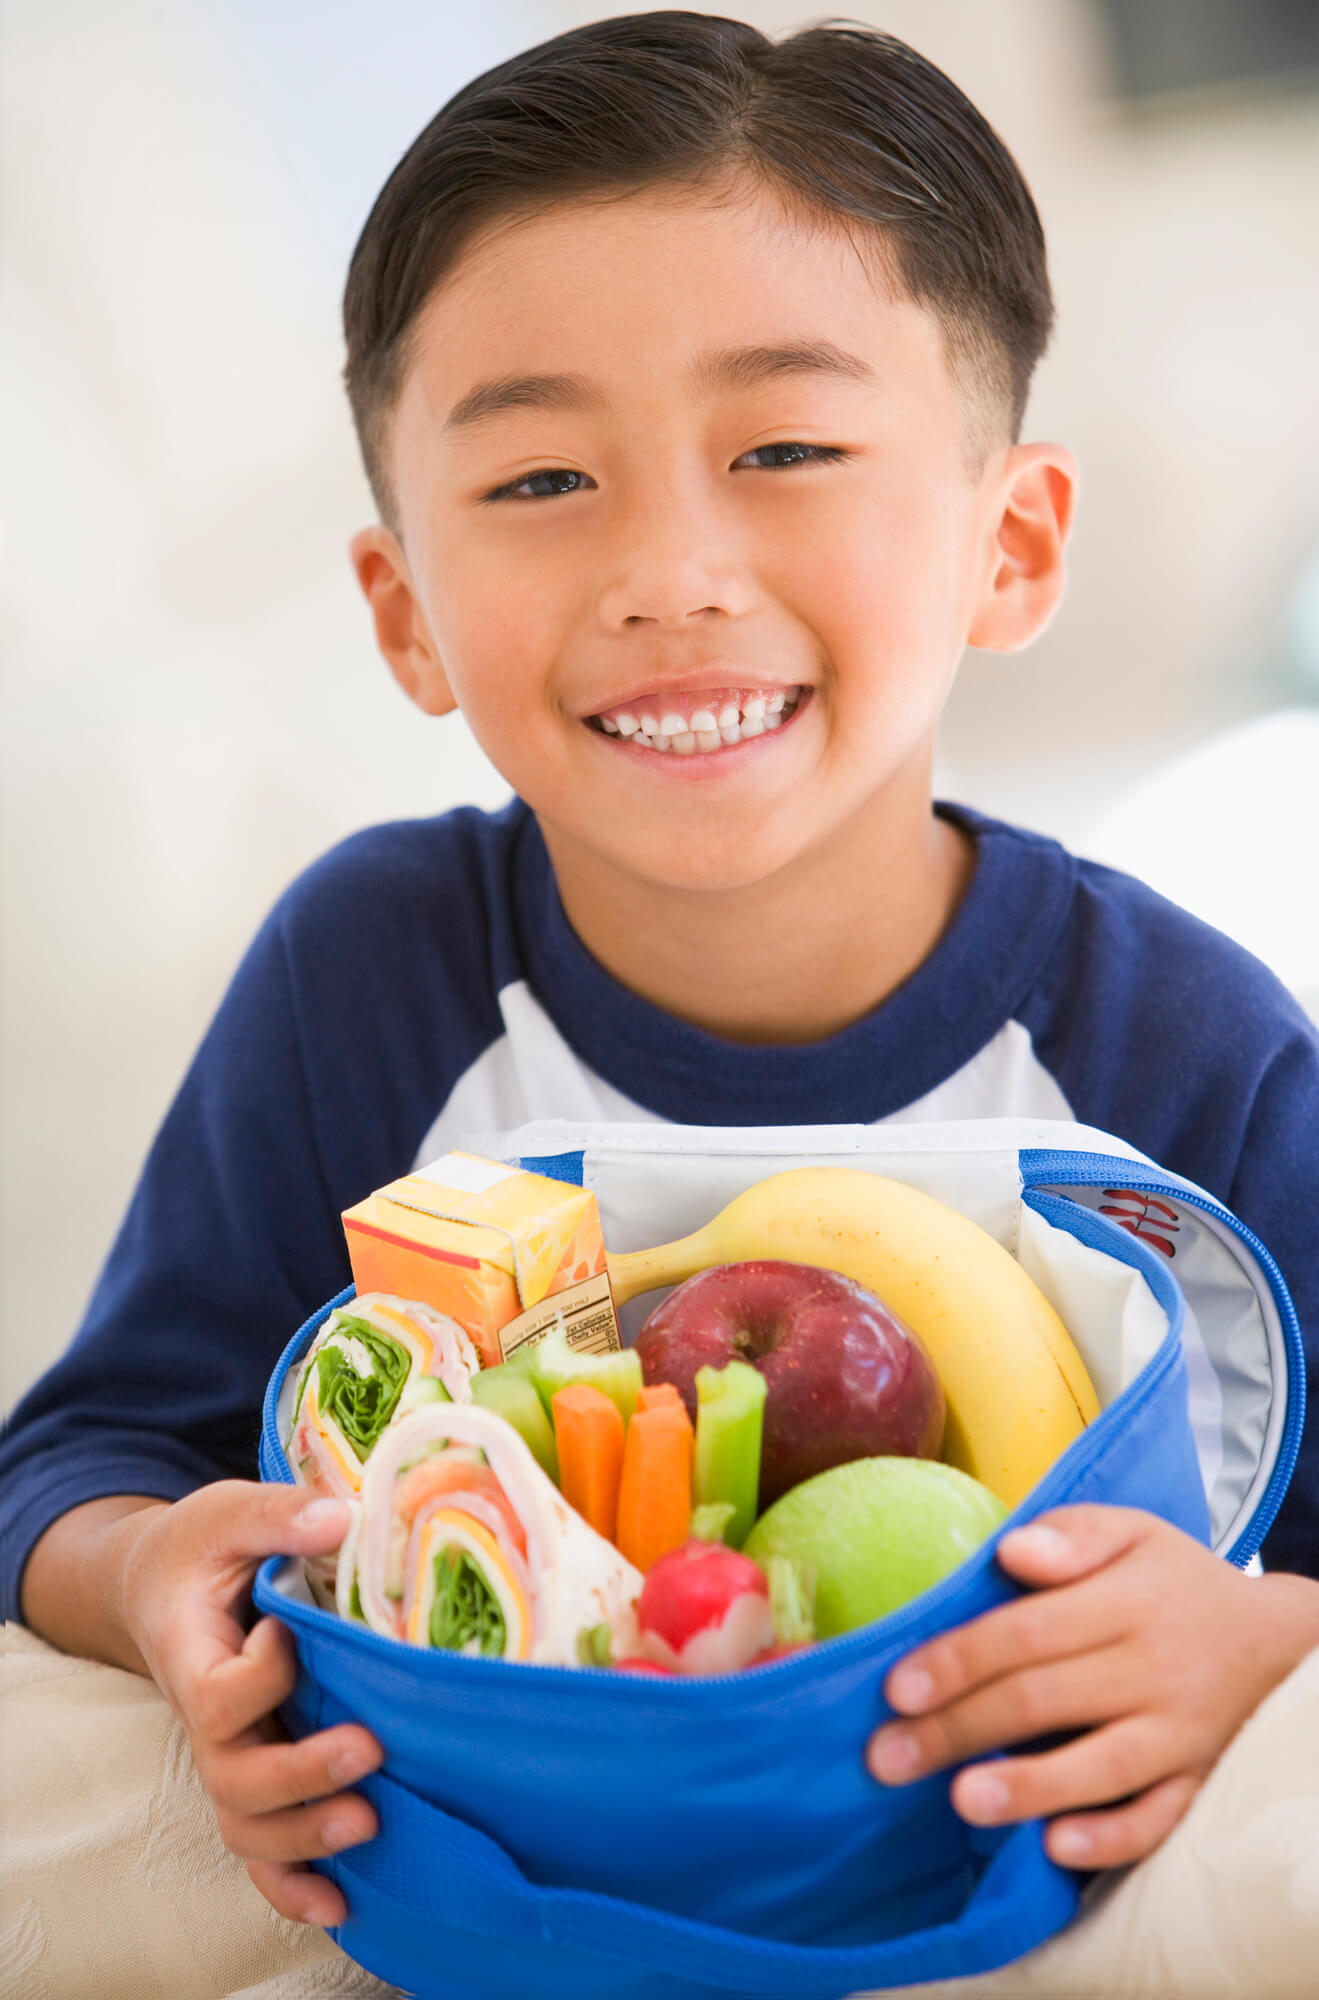 How To Pack a Healthy Lunch for a Picky Eater